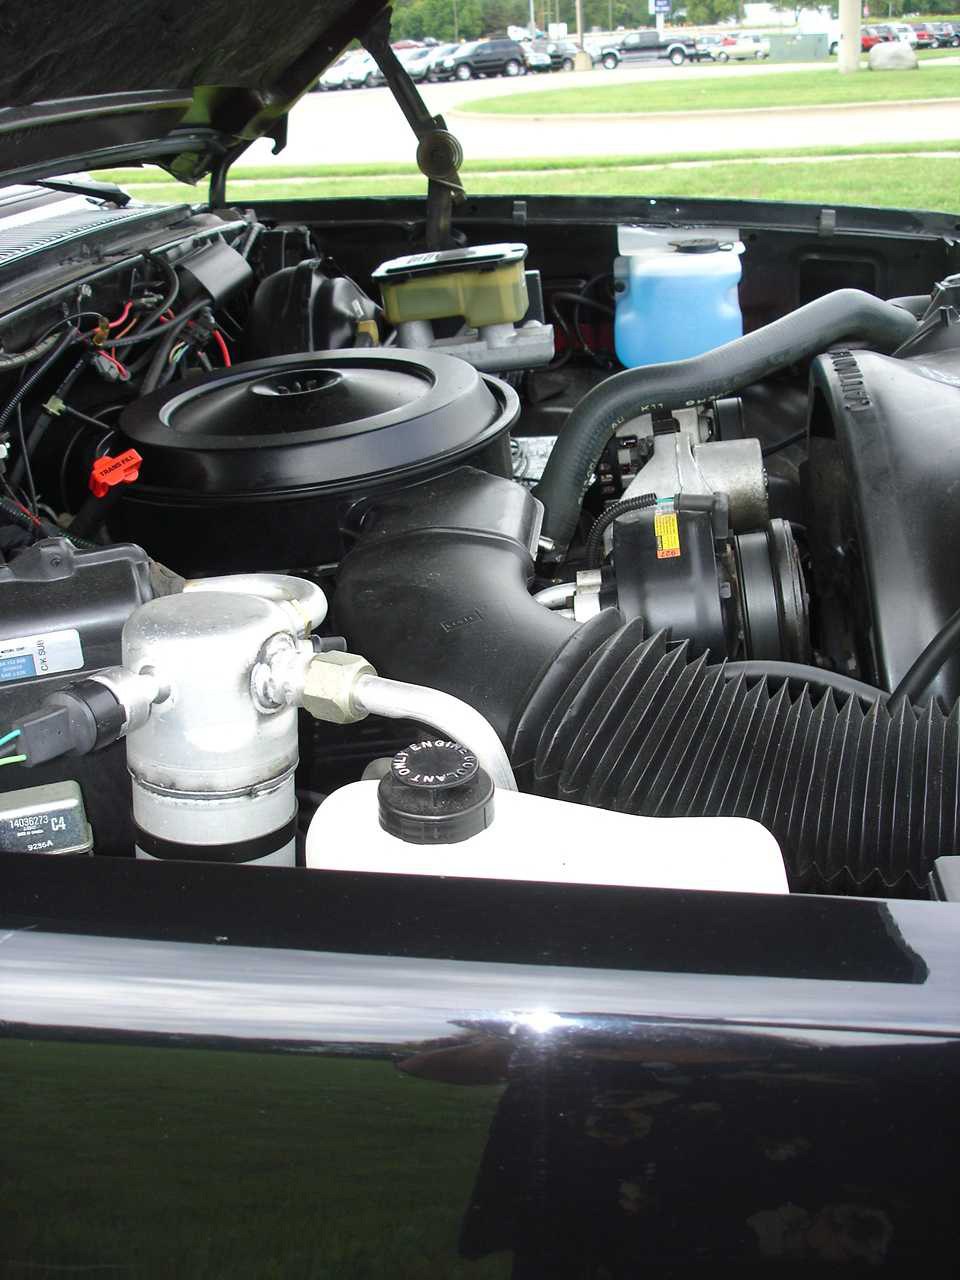 1990 CHEVROLET SUBURBAN STATION WAGON - Engine - 61082